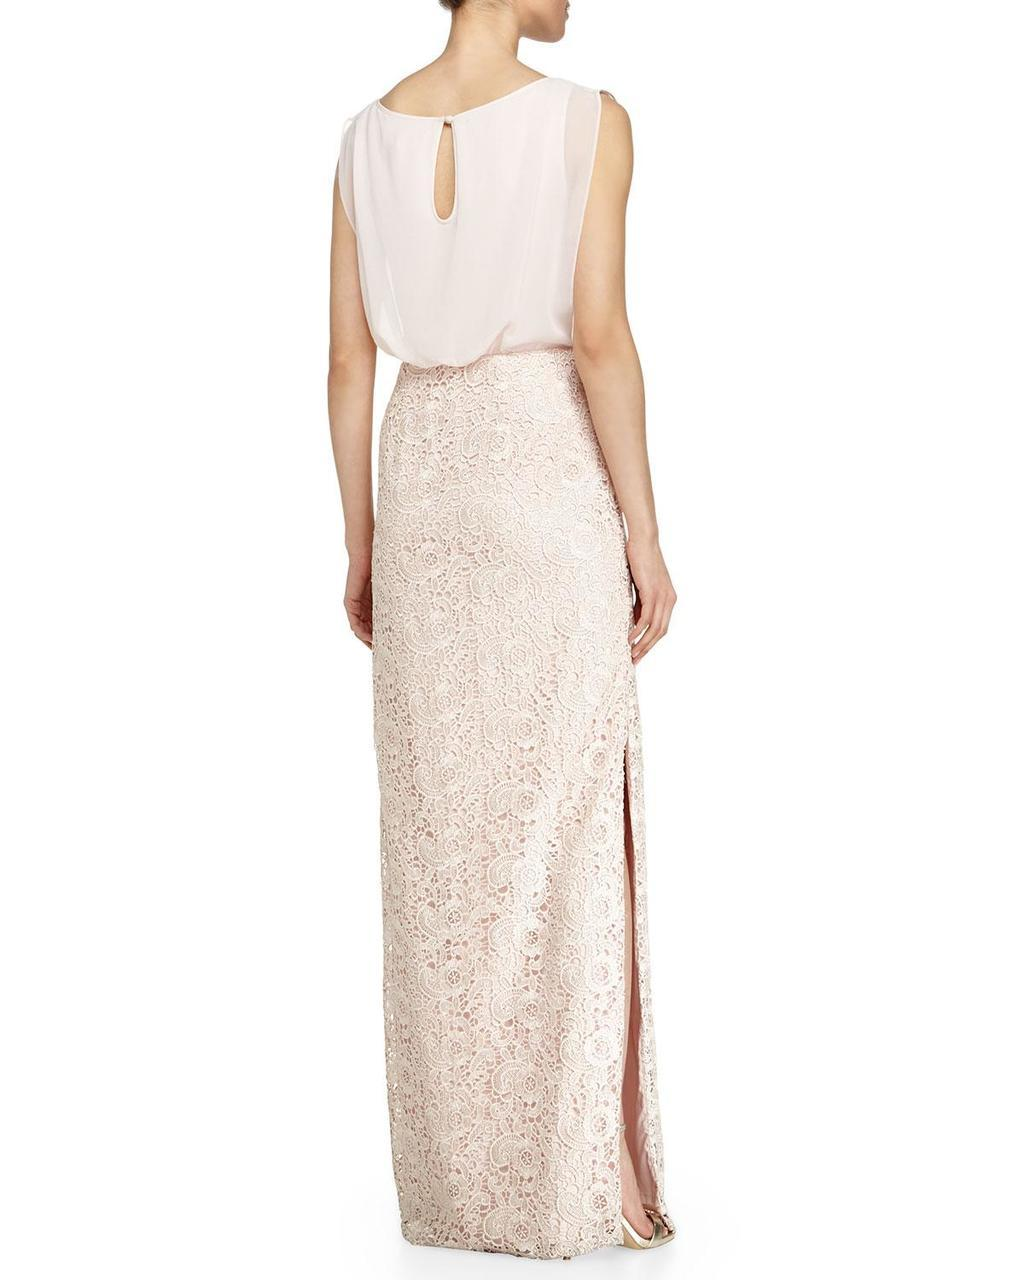 Aidan Mattox - Sleeveless Lace Long Dress 251704760 in Neutral